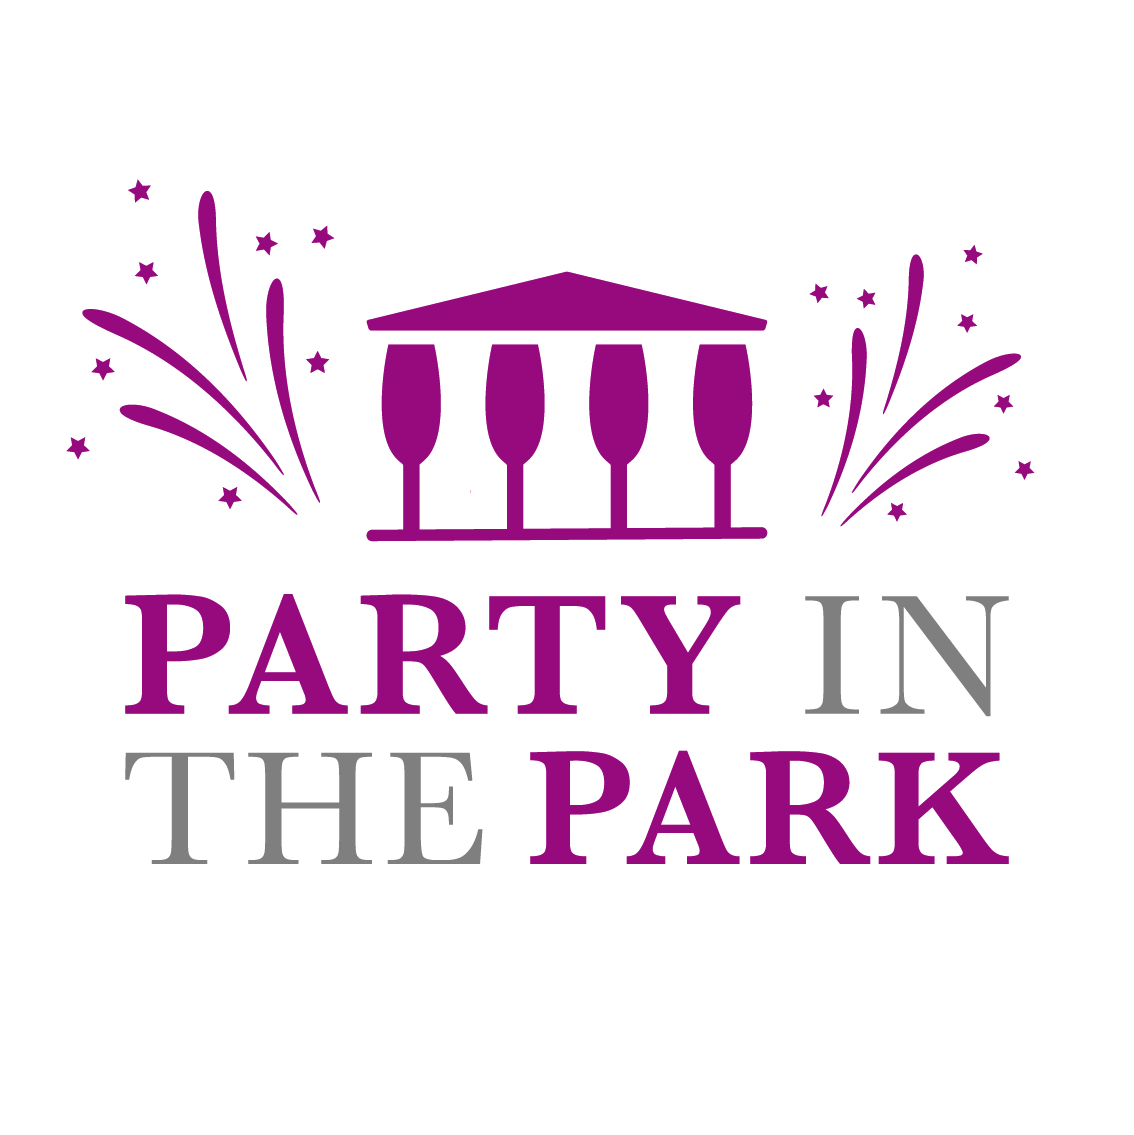 Party in the park@2x